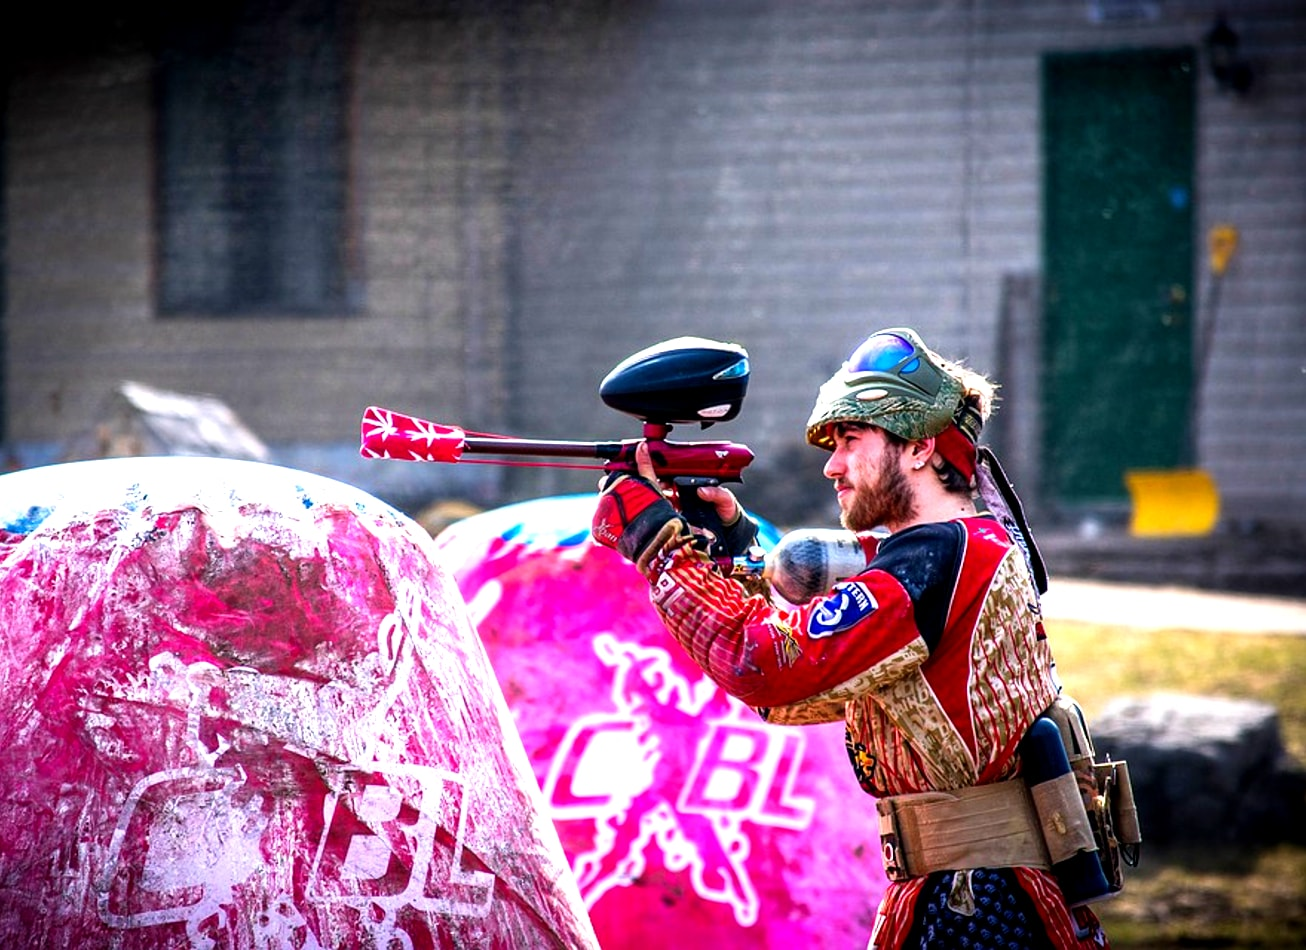 paintball indoor outdoor plein air bangkok activites vimigo